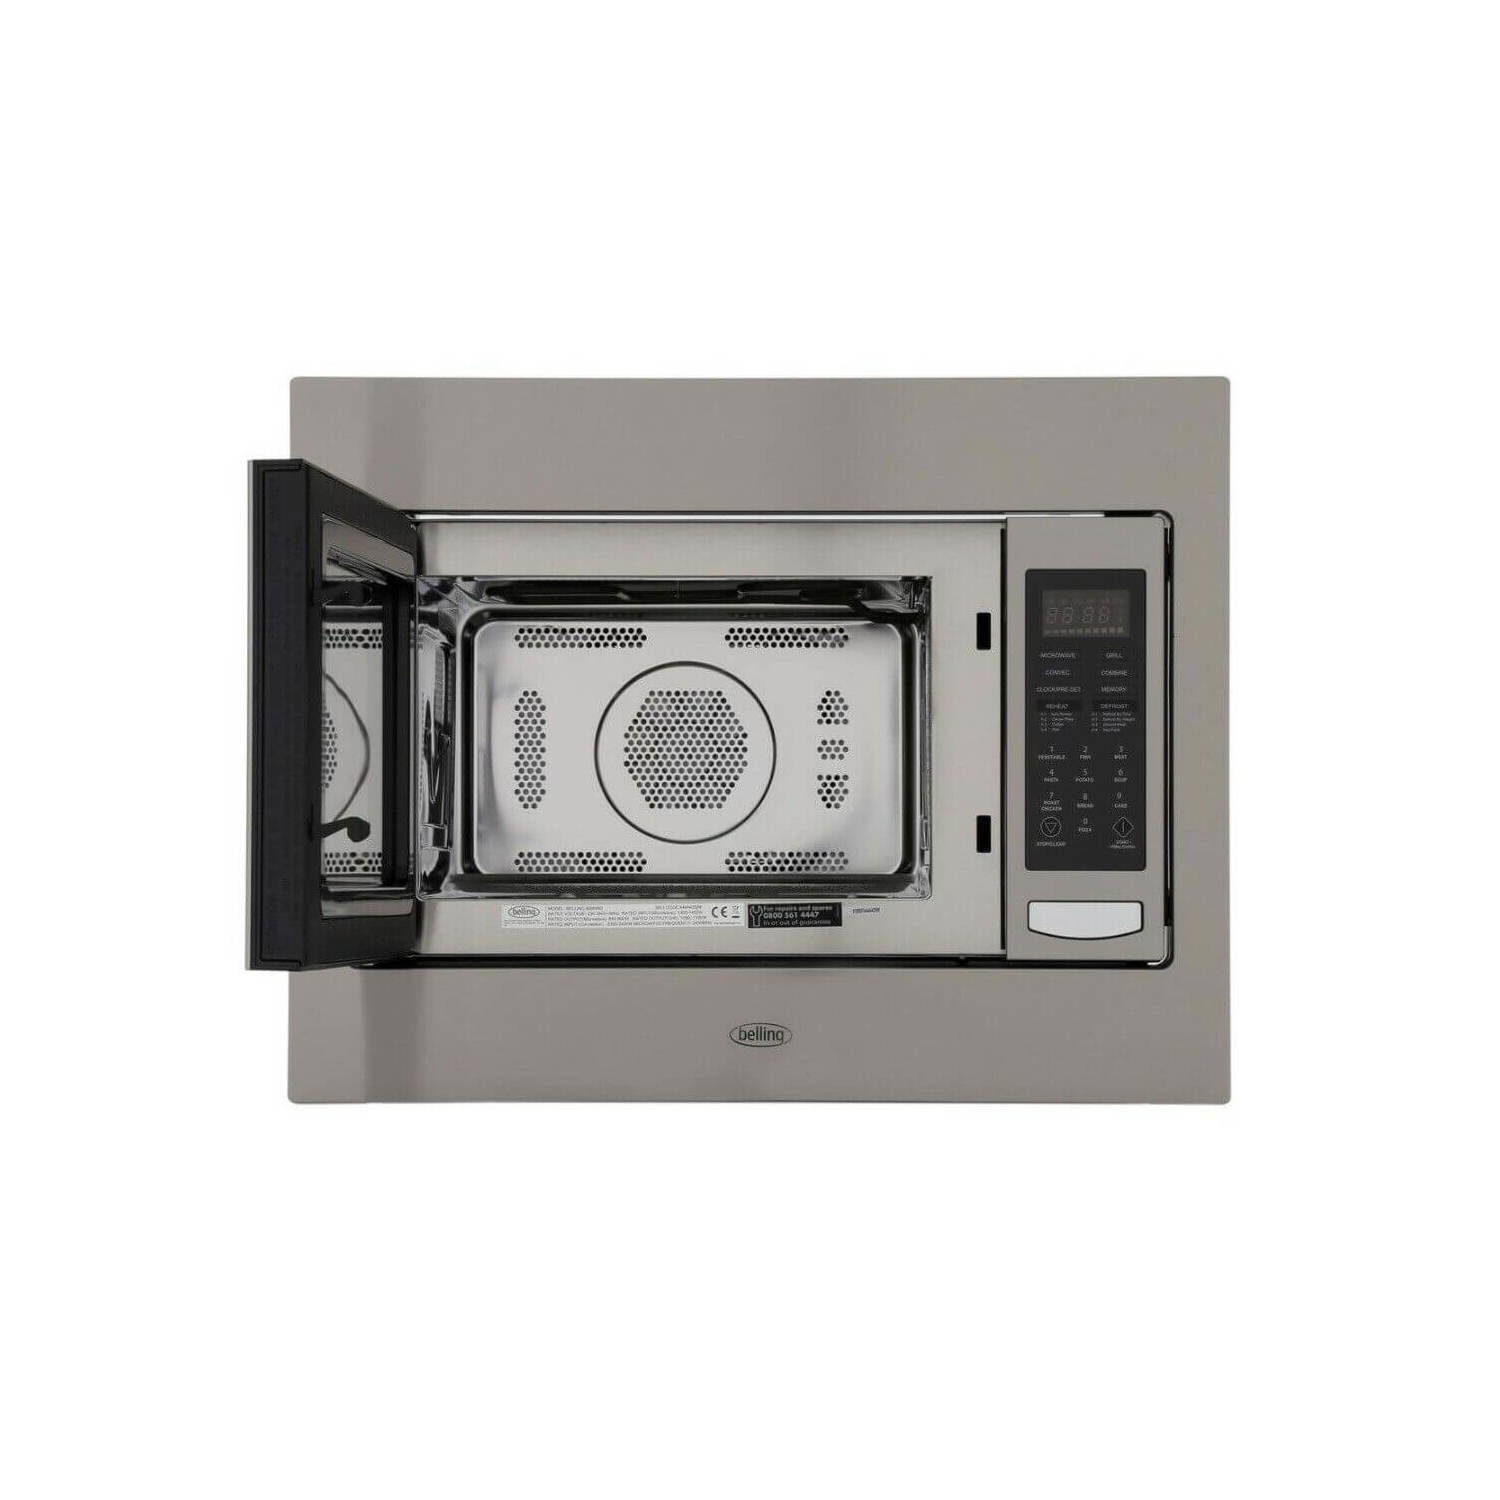 belling bimw60 built in microwave oven for a 60cm wide cabinet stainless steel